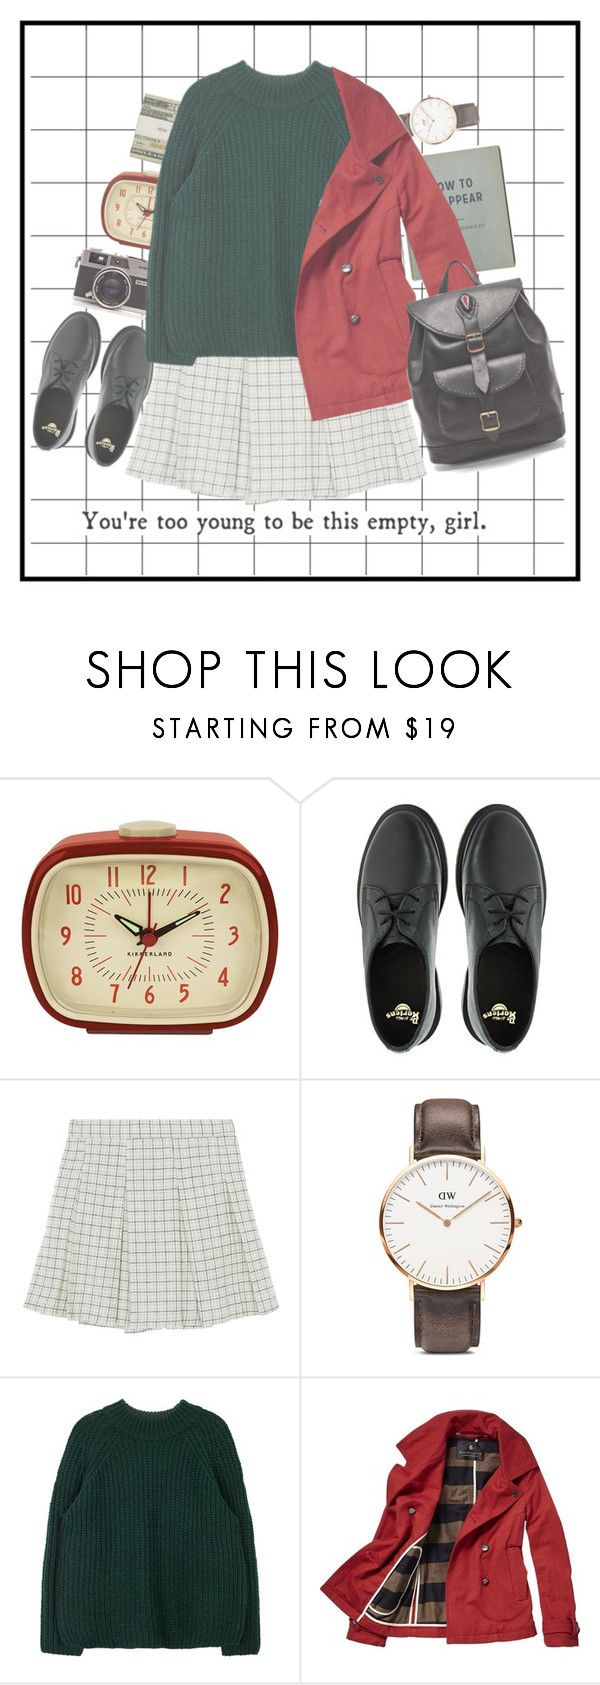 """""""Too young to be empty at school"""" by yeppeune ❤ liked on Polyvore featuring Kikkerland, Jack Spade, Dr. Martens, Daniel Wellington, Scotch & Soda, Stela 9, vintage, school, preppy and nguyenthidieuthanh"""